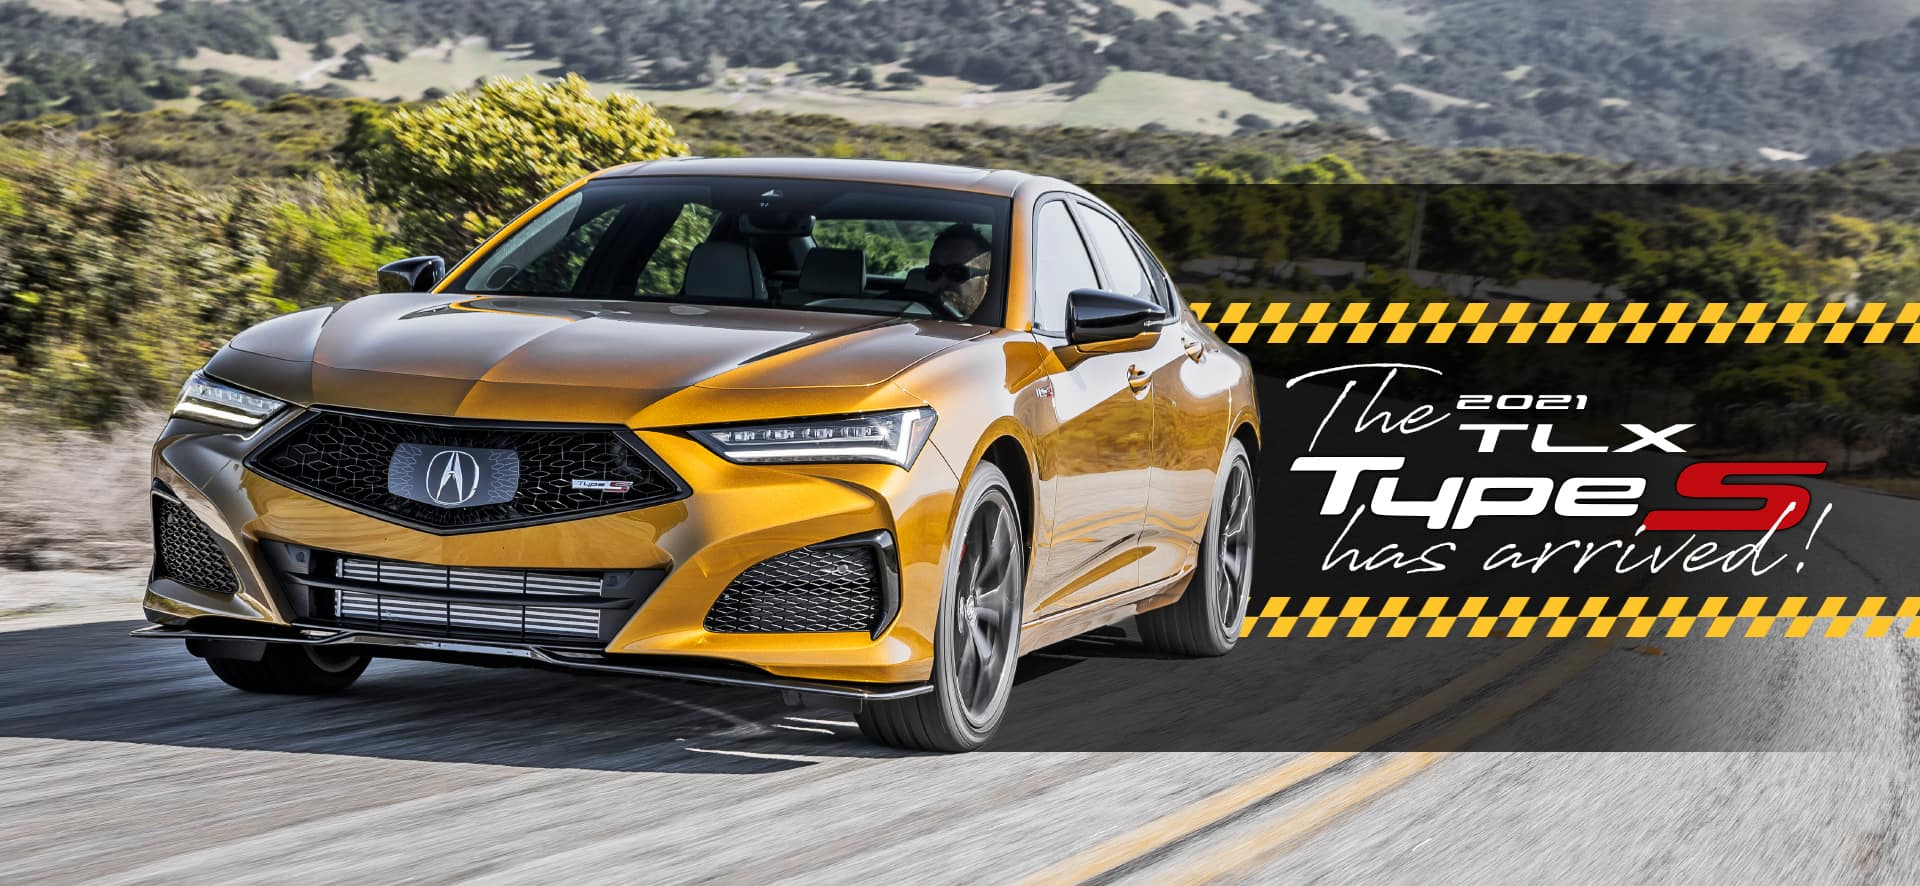 2021-acura-tlx-type-s-main-page